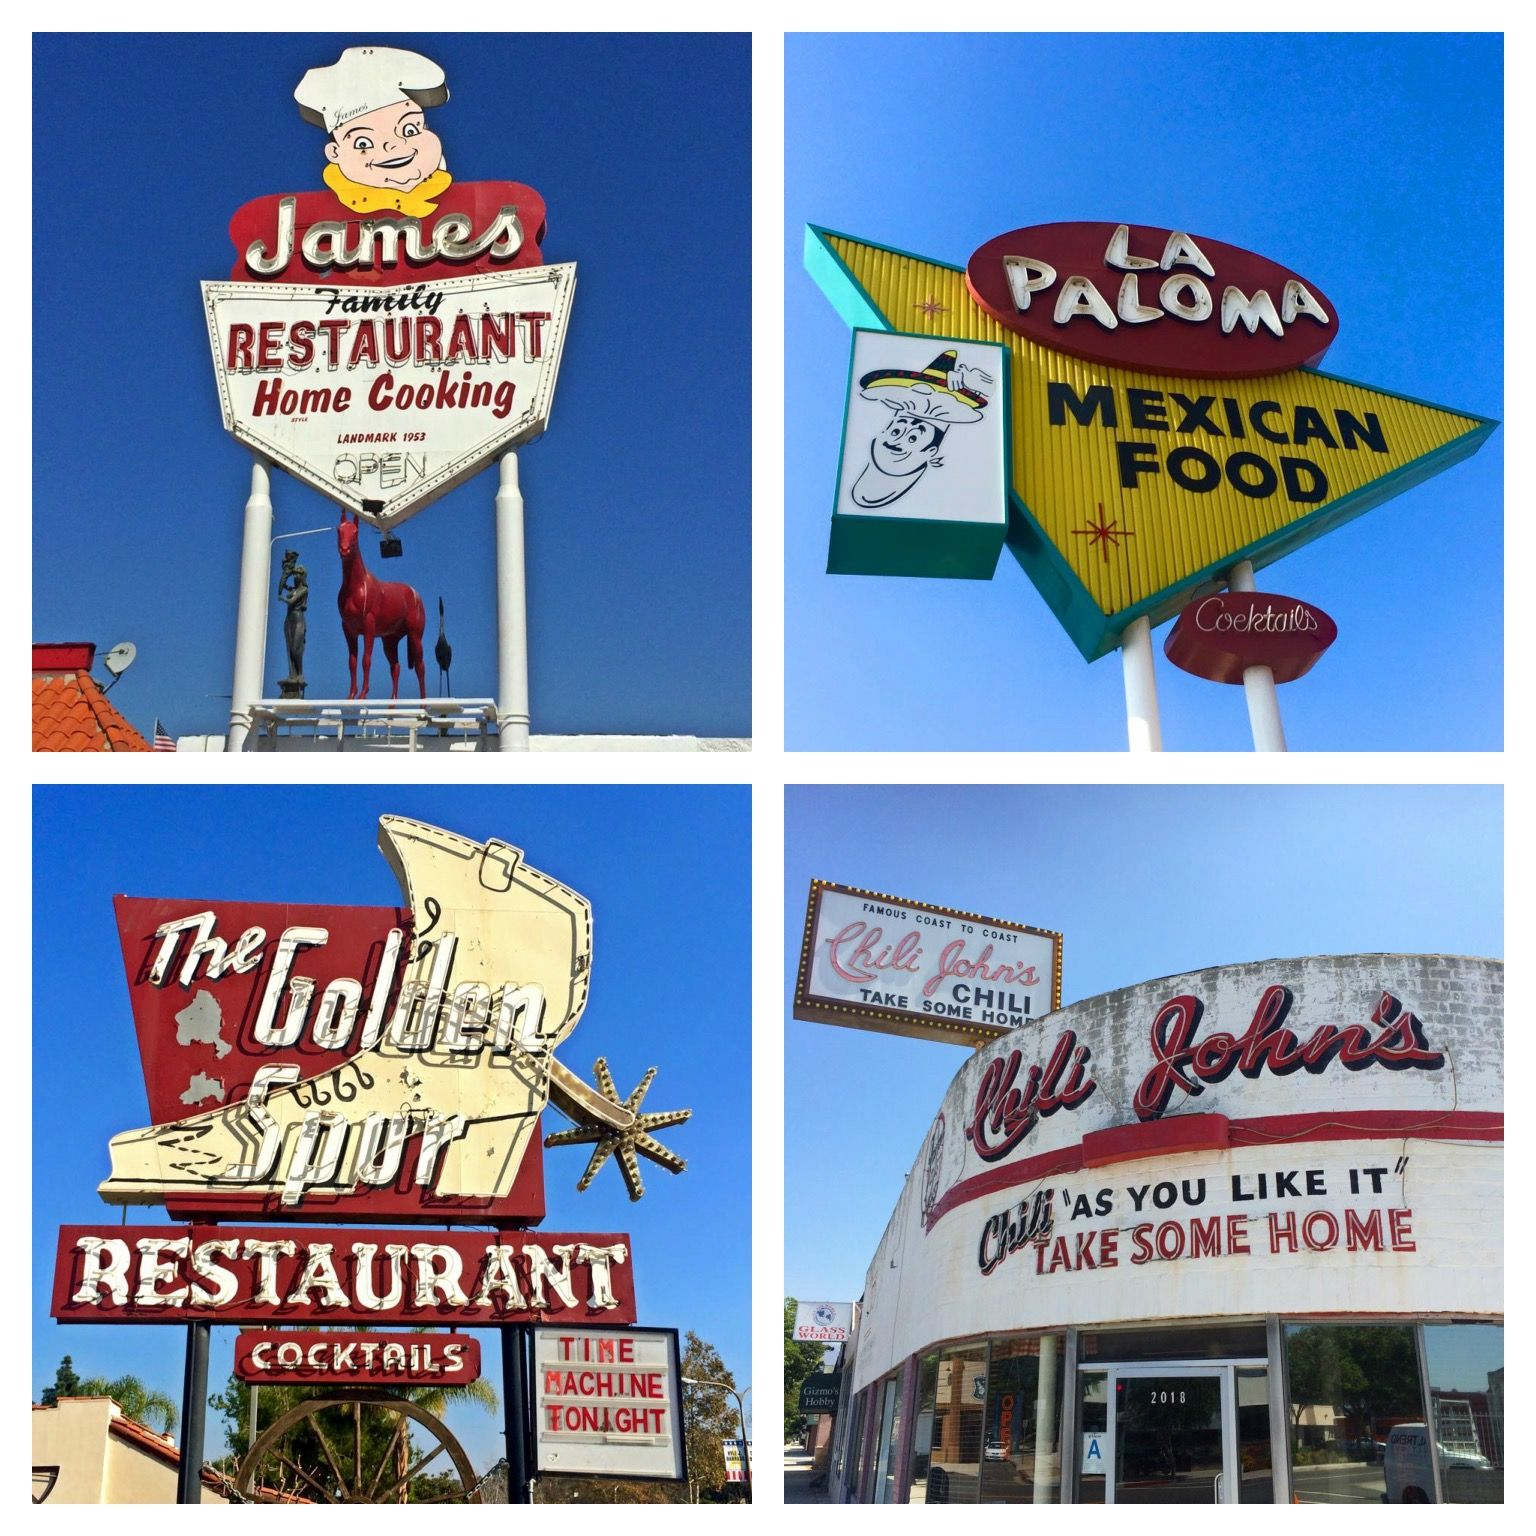 Fastest Car In The World Wallpaper 2015 Offbeat L A The Oldest Surviving Los Angeles Restaurants